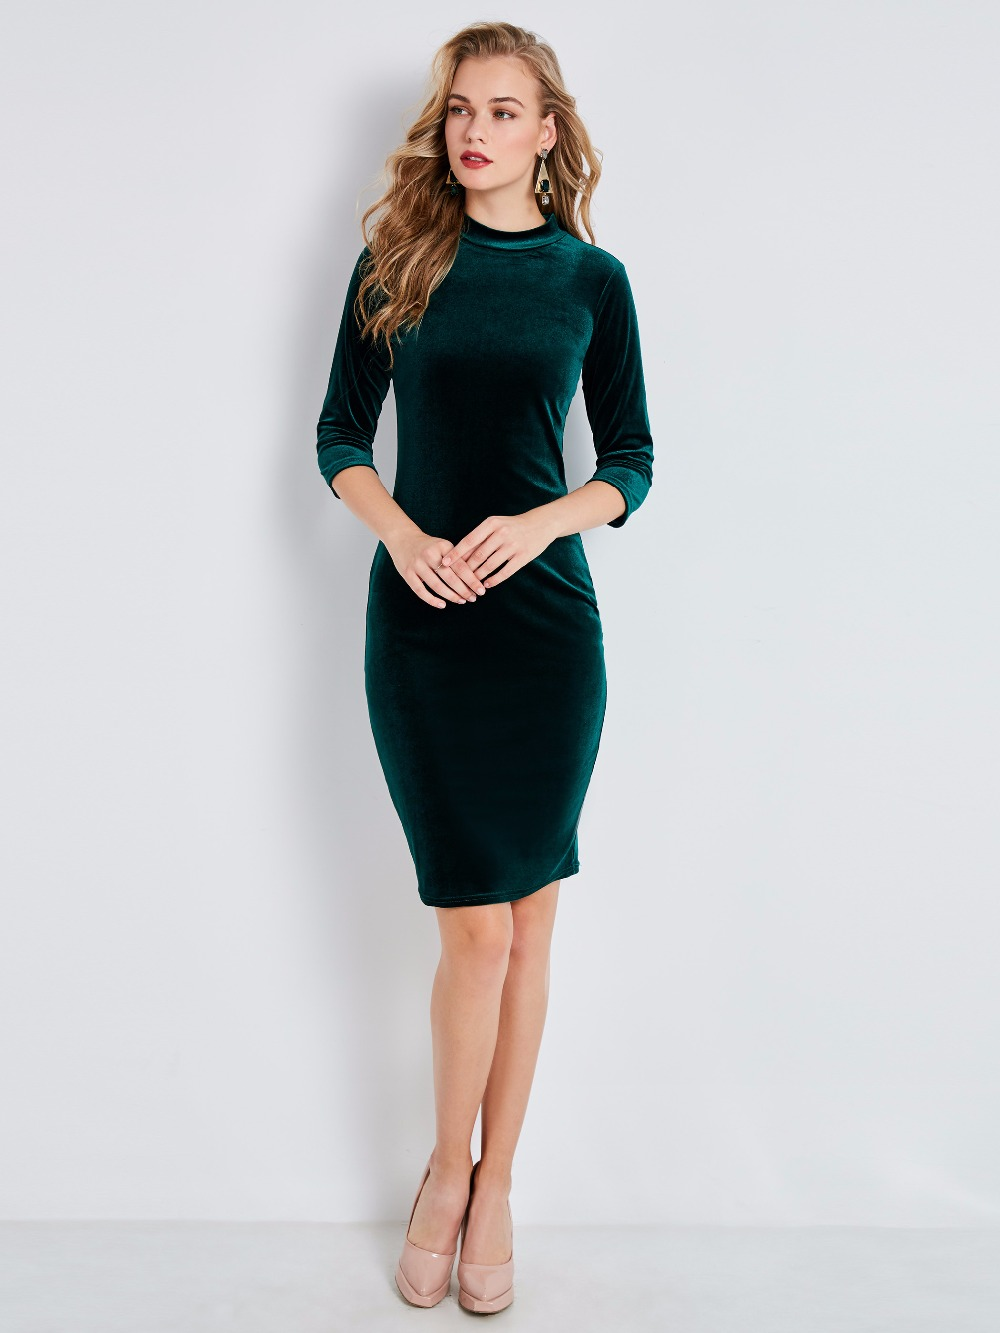 Small Of Hunter Green Dress